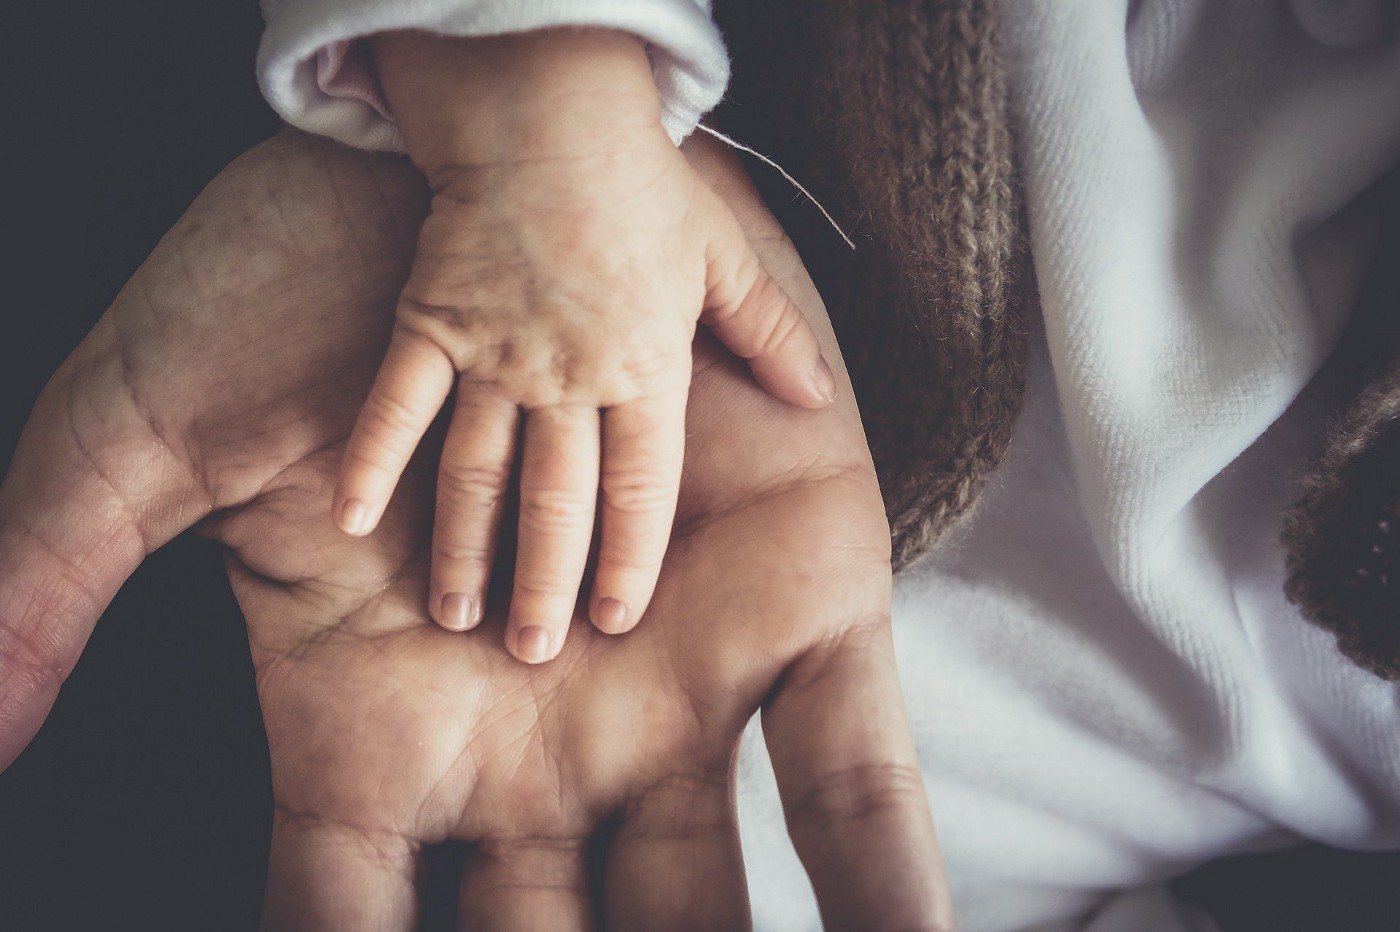 An adult hand representing a father against a child hand, representing parenthood.